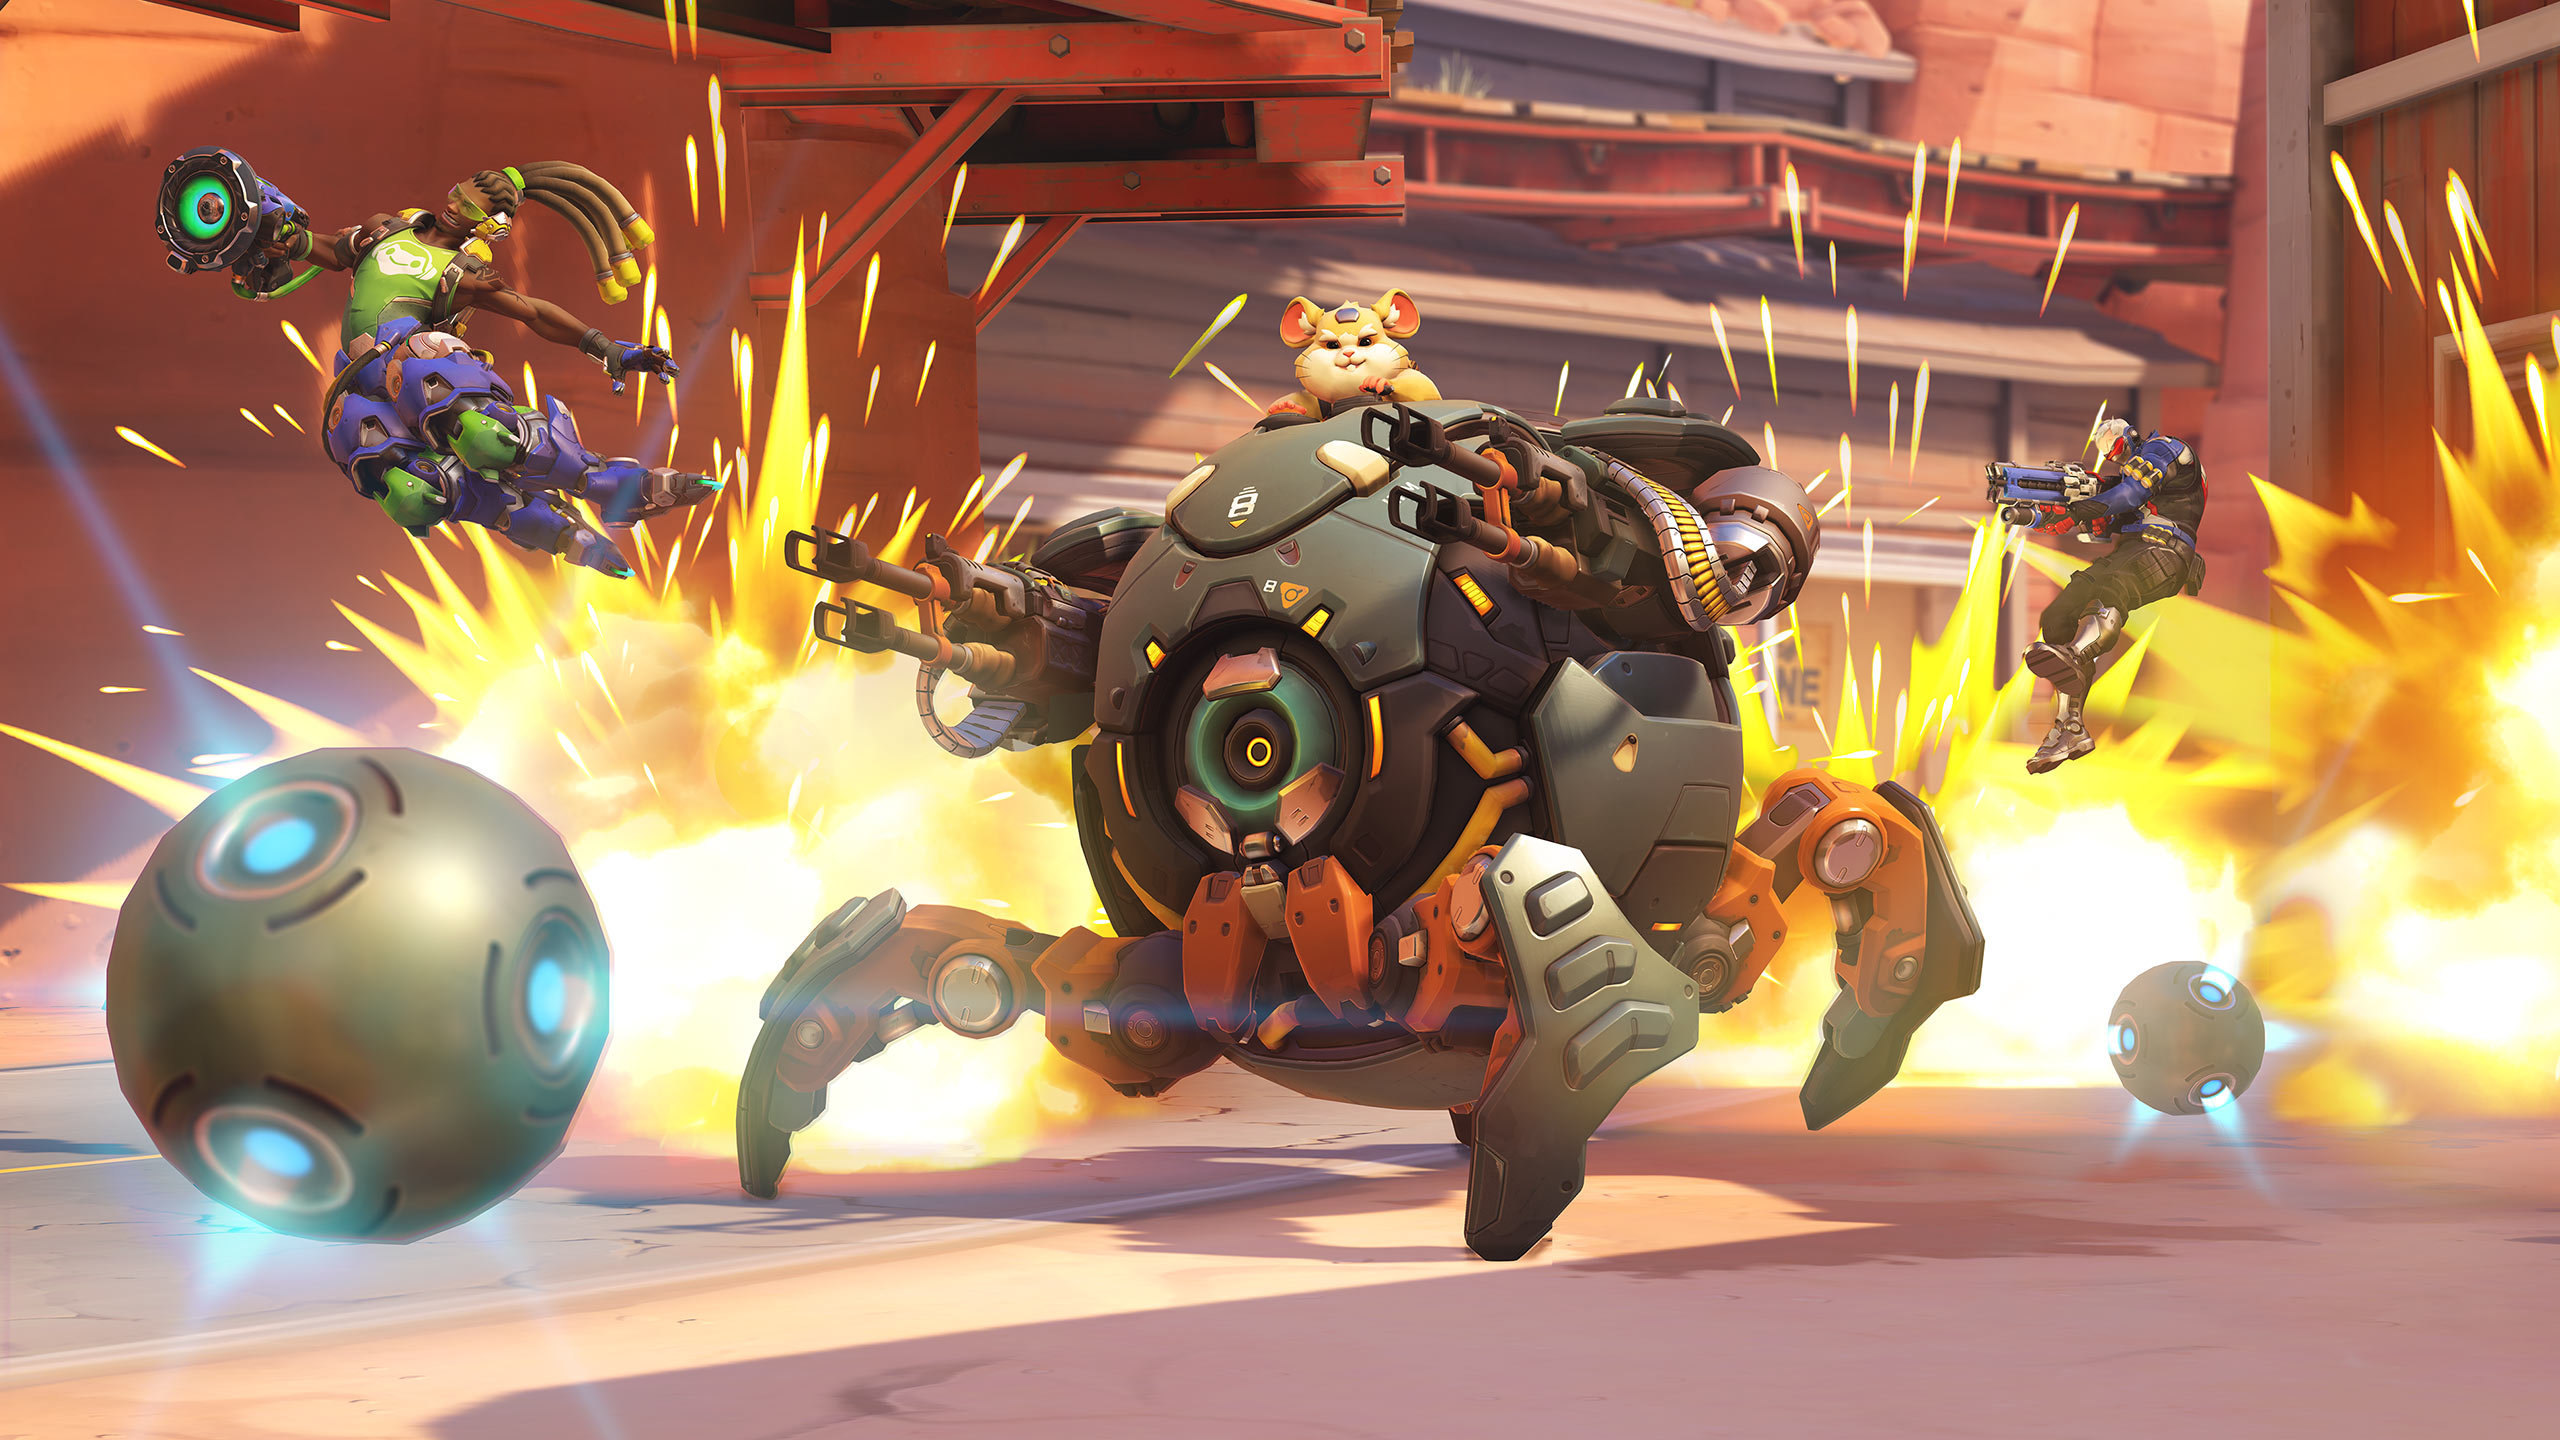 The Ball And The Overwatch: What Happened And Why It Blew Up Out Of Nowhere